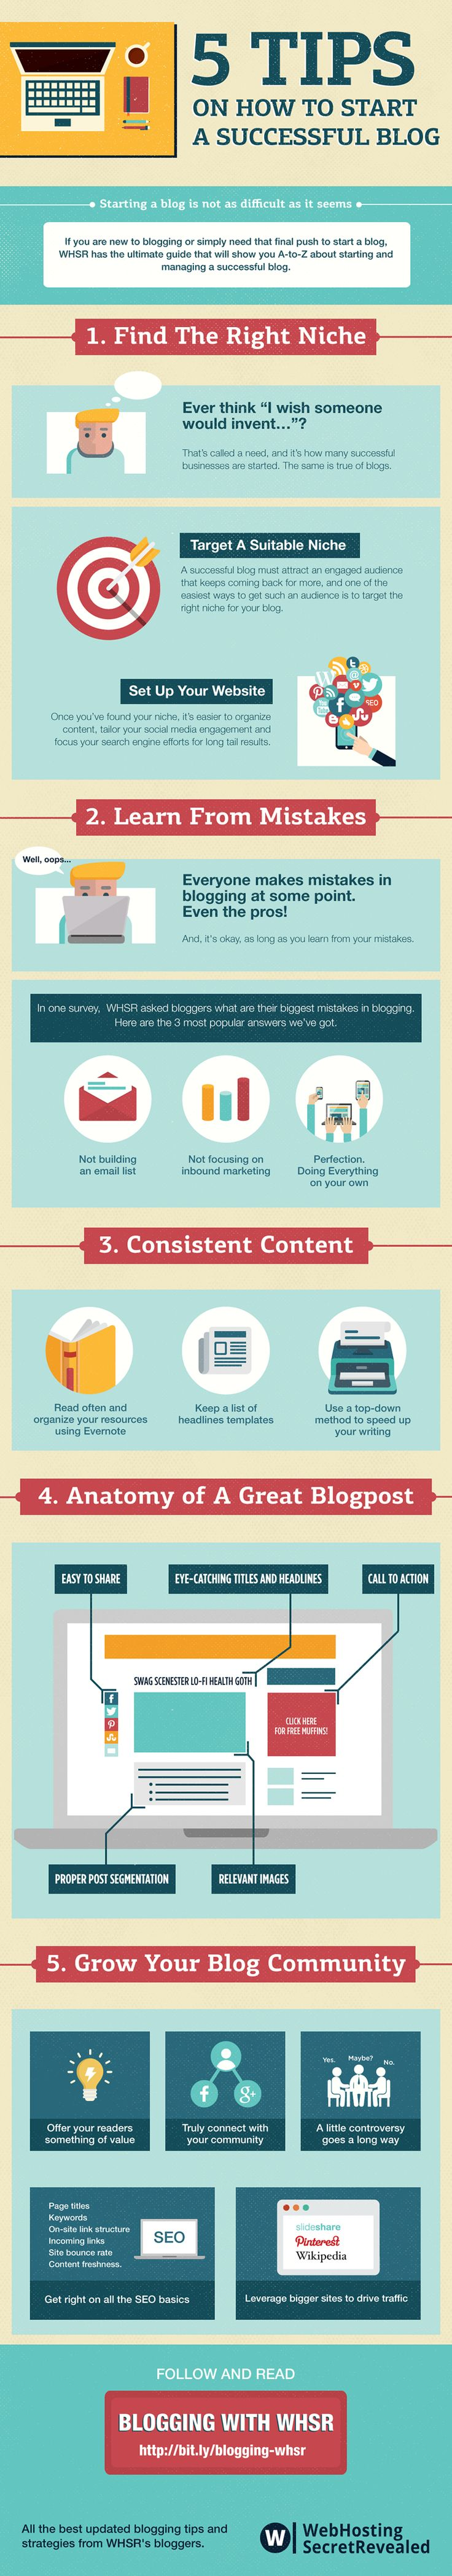 this infographic gives 5 tips you can use to start a successful blog